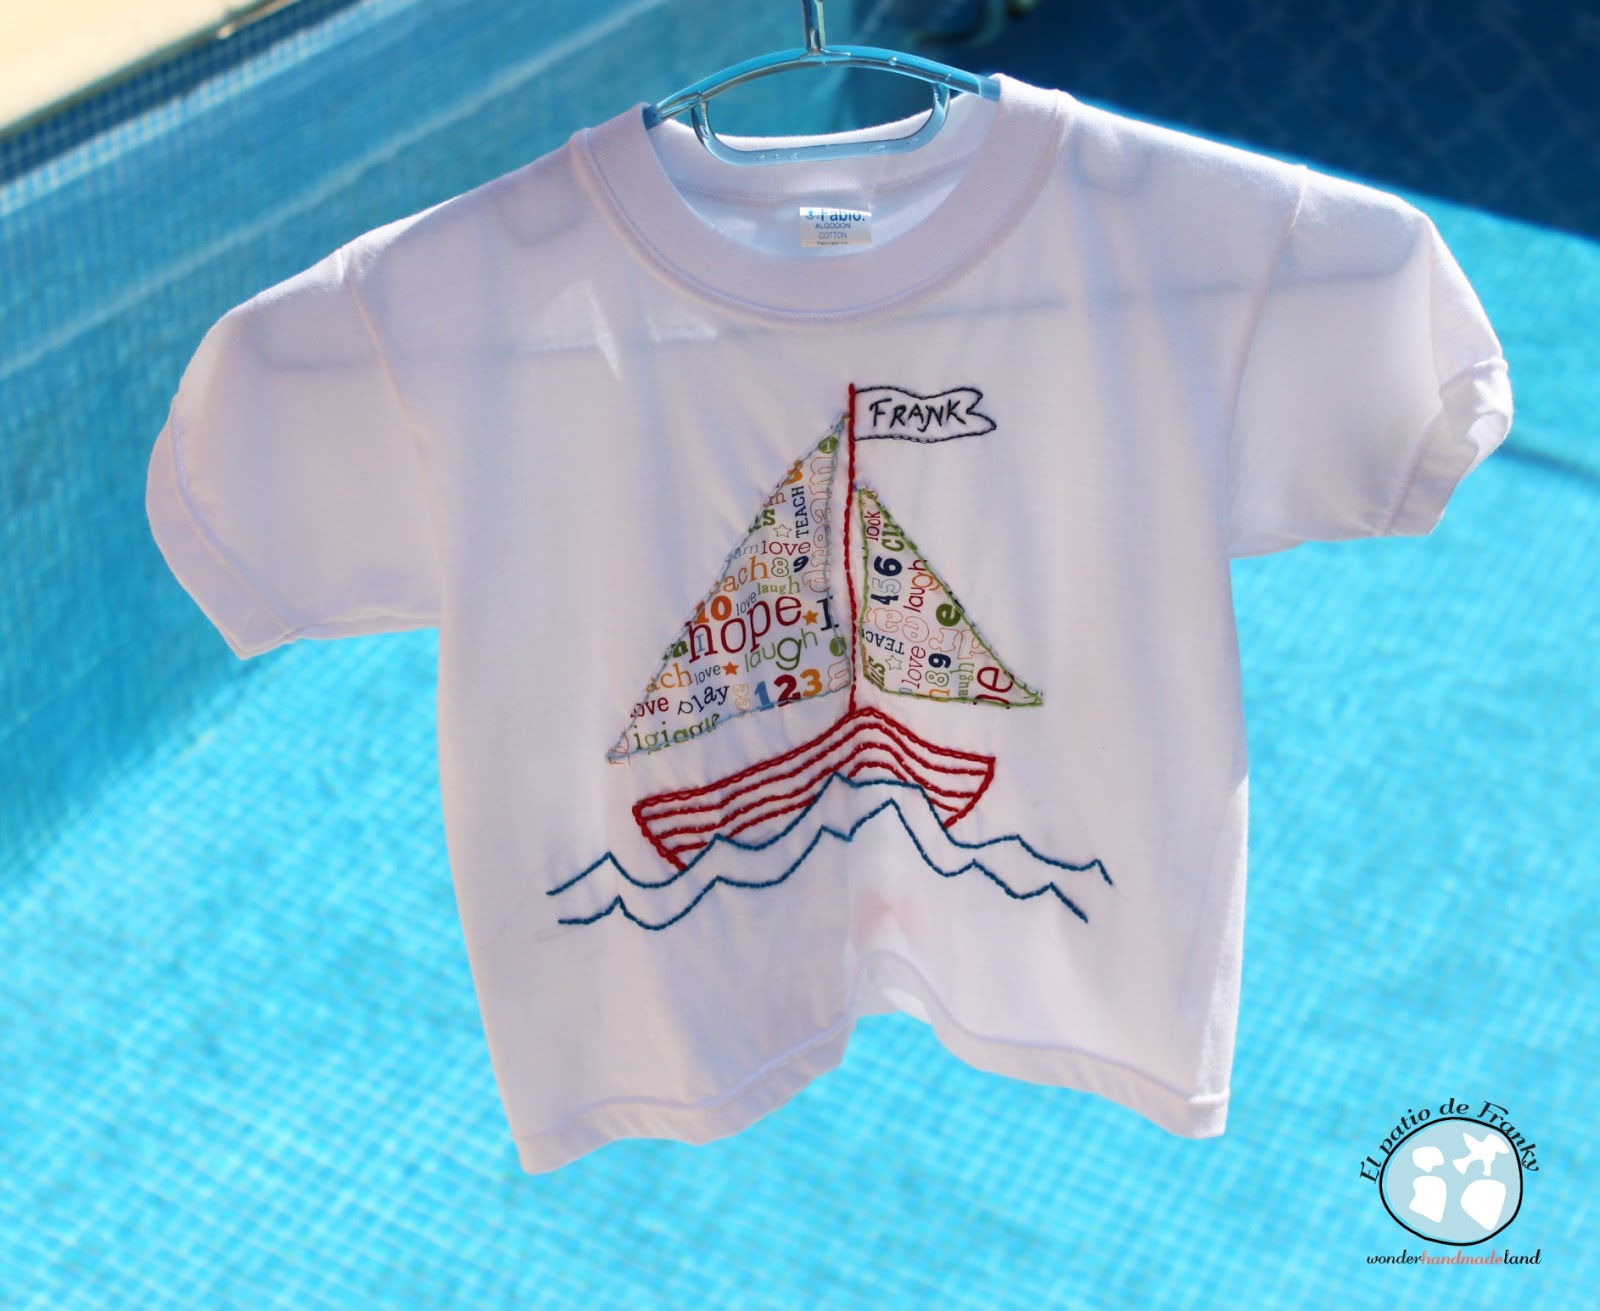 Camiseta marinera bordada